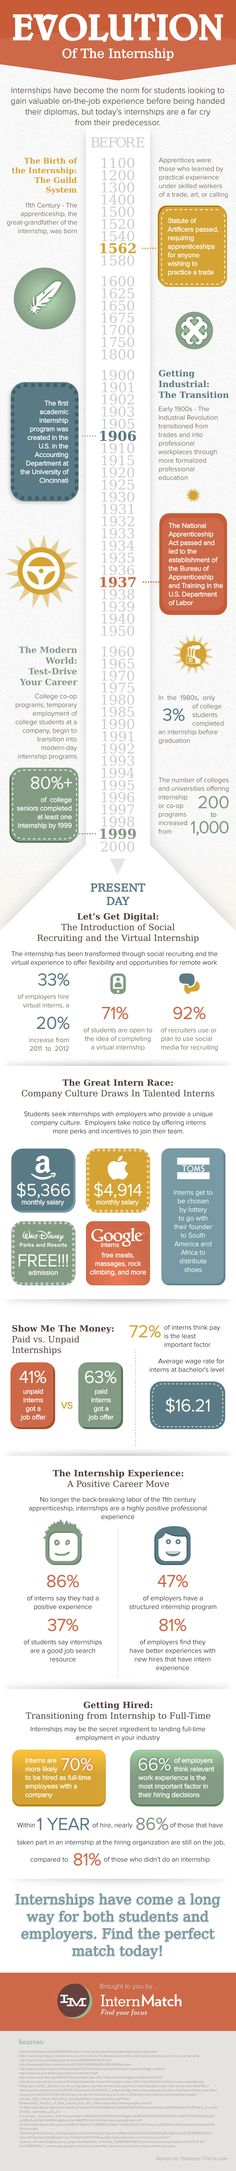 The Evolution of The Internship [INFOGRAPHIC] | Wetfeet Blog